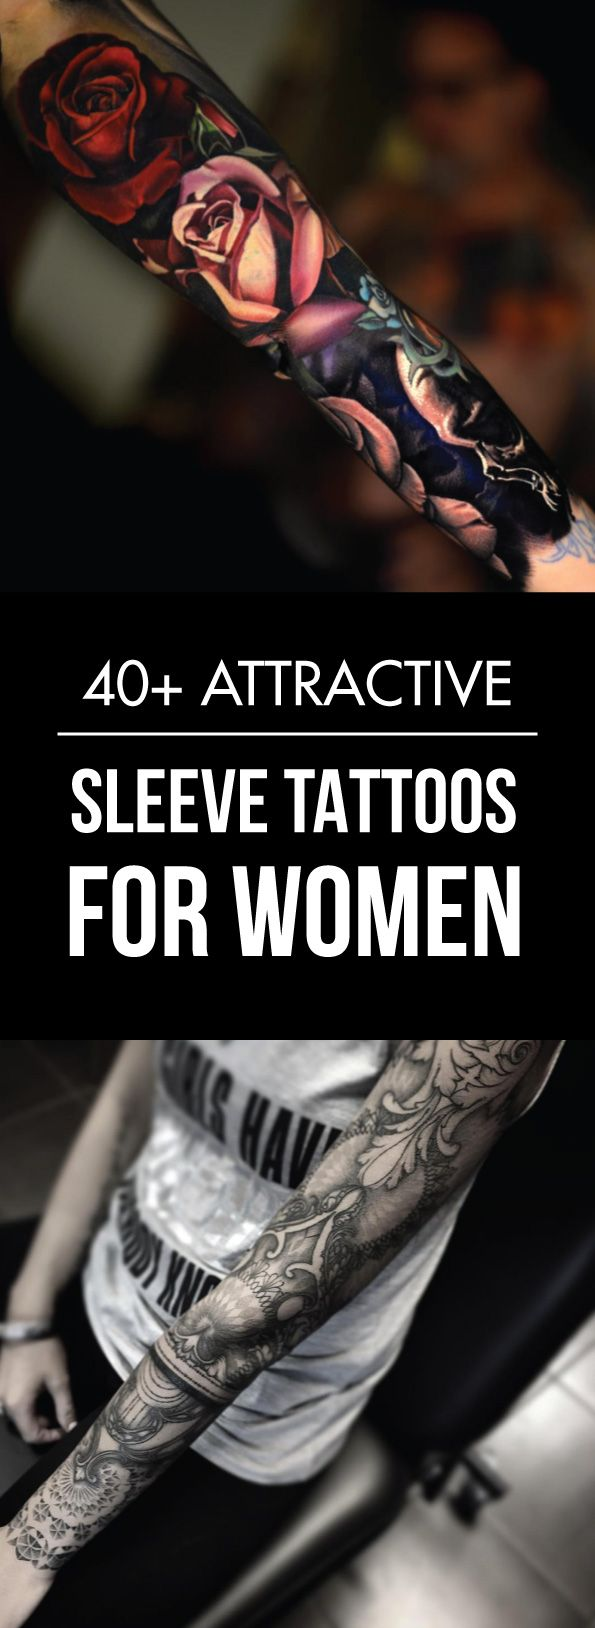 Tattoos are so sexy